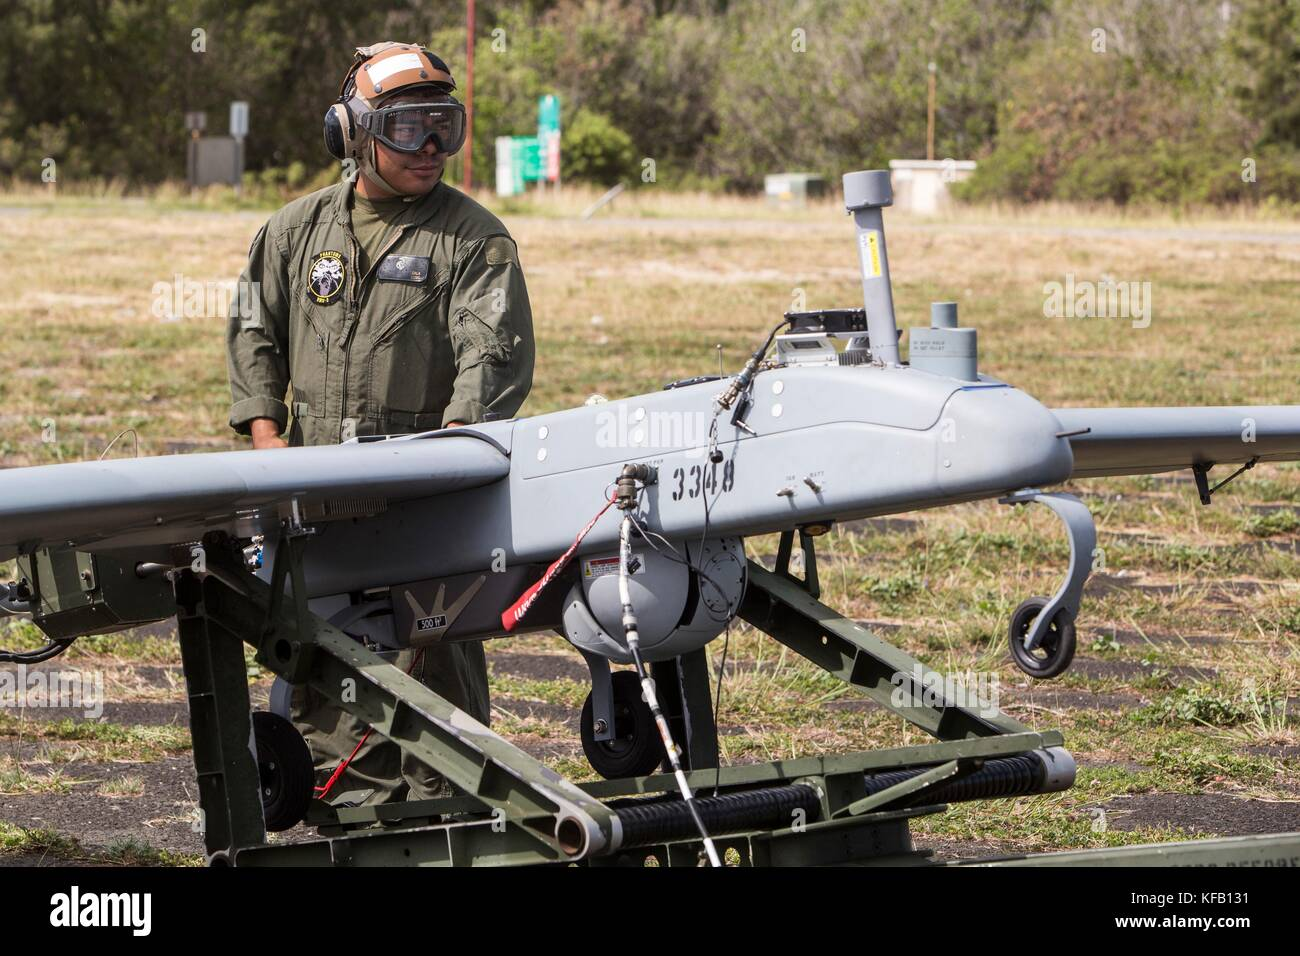 A U.S. Marine Corps AAI RQ-7B Shadow unmanned aerial vehicle is launched into the air during a training event at - Stock Image